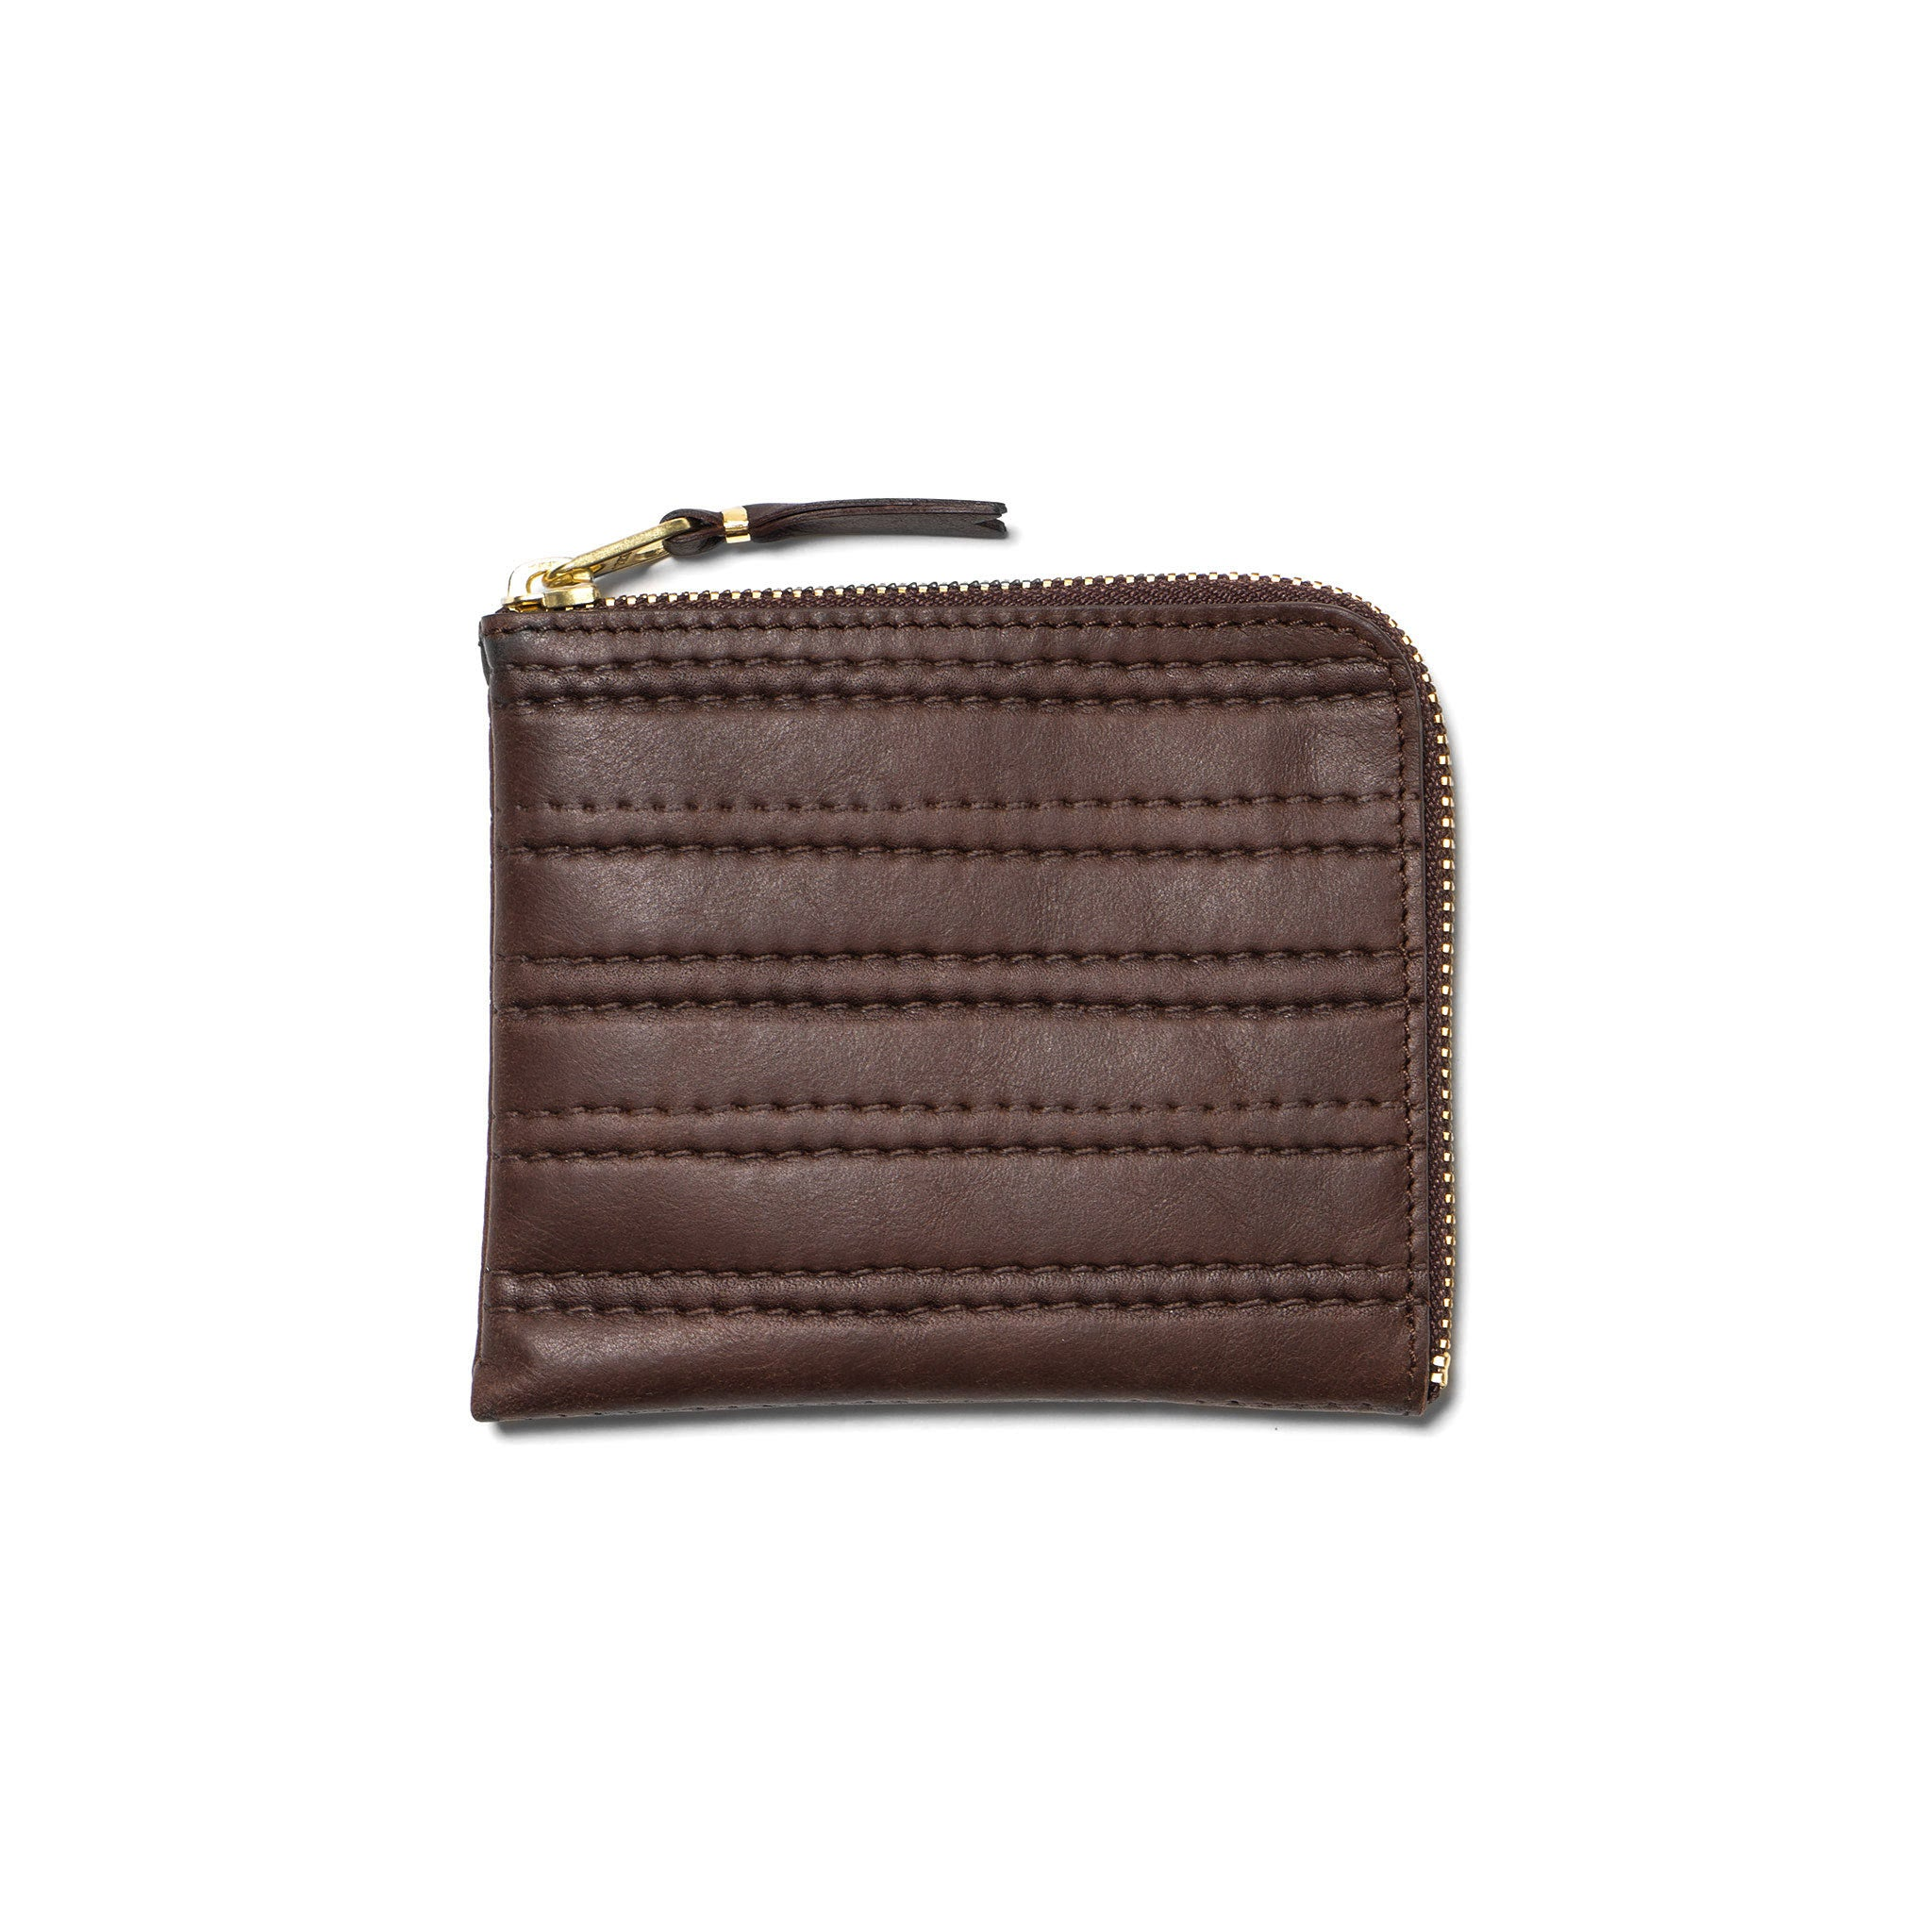 Comme Des Gar莽ons Wallet embossed zip wallet Enjoy Sale Online Cheap Limited Edition Enjoy Cheap Price 7OYTY0ba